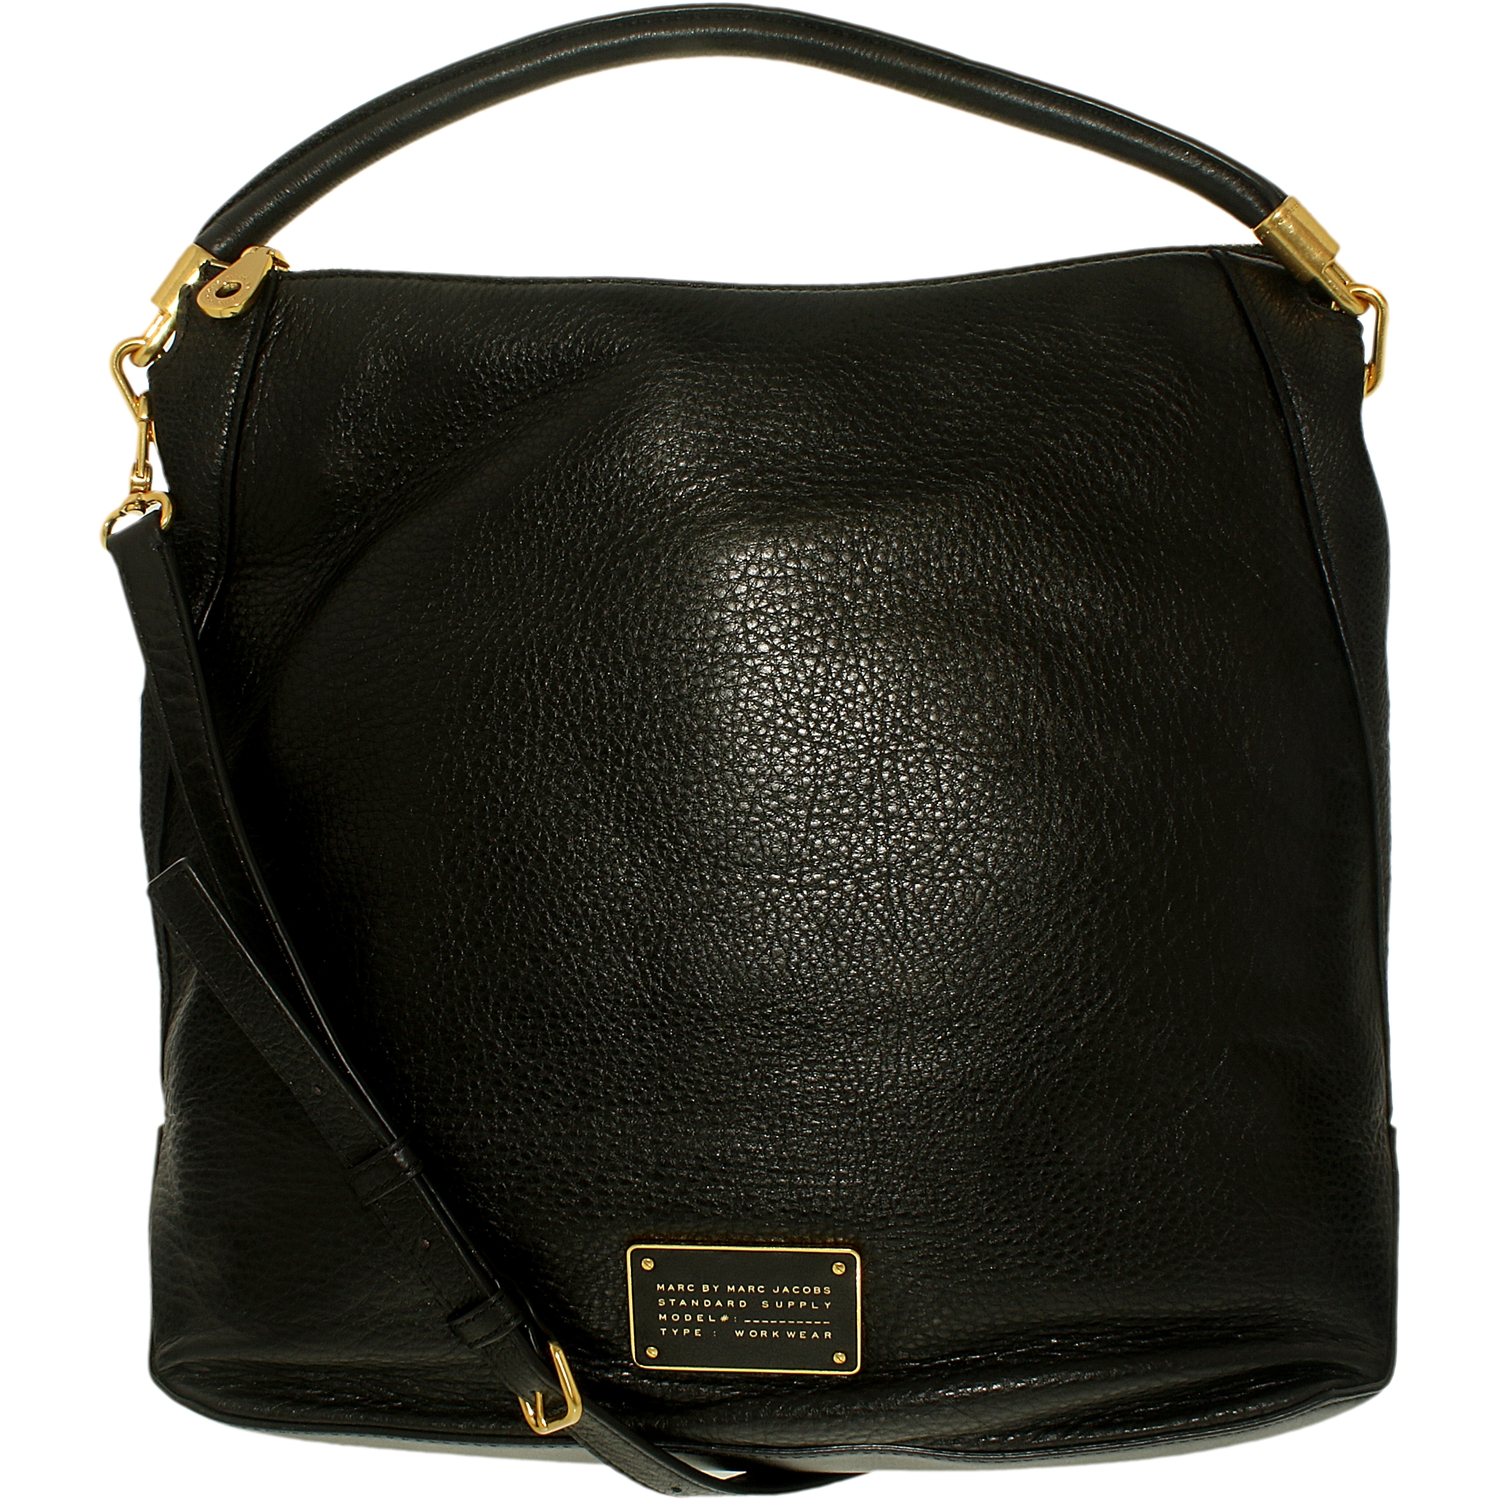 Marc by Marc Jacobs Too Hot To Handle Leather Hobo Bag - Black